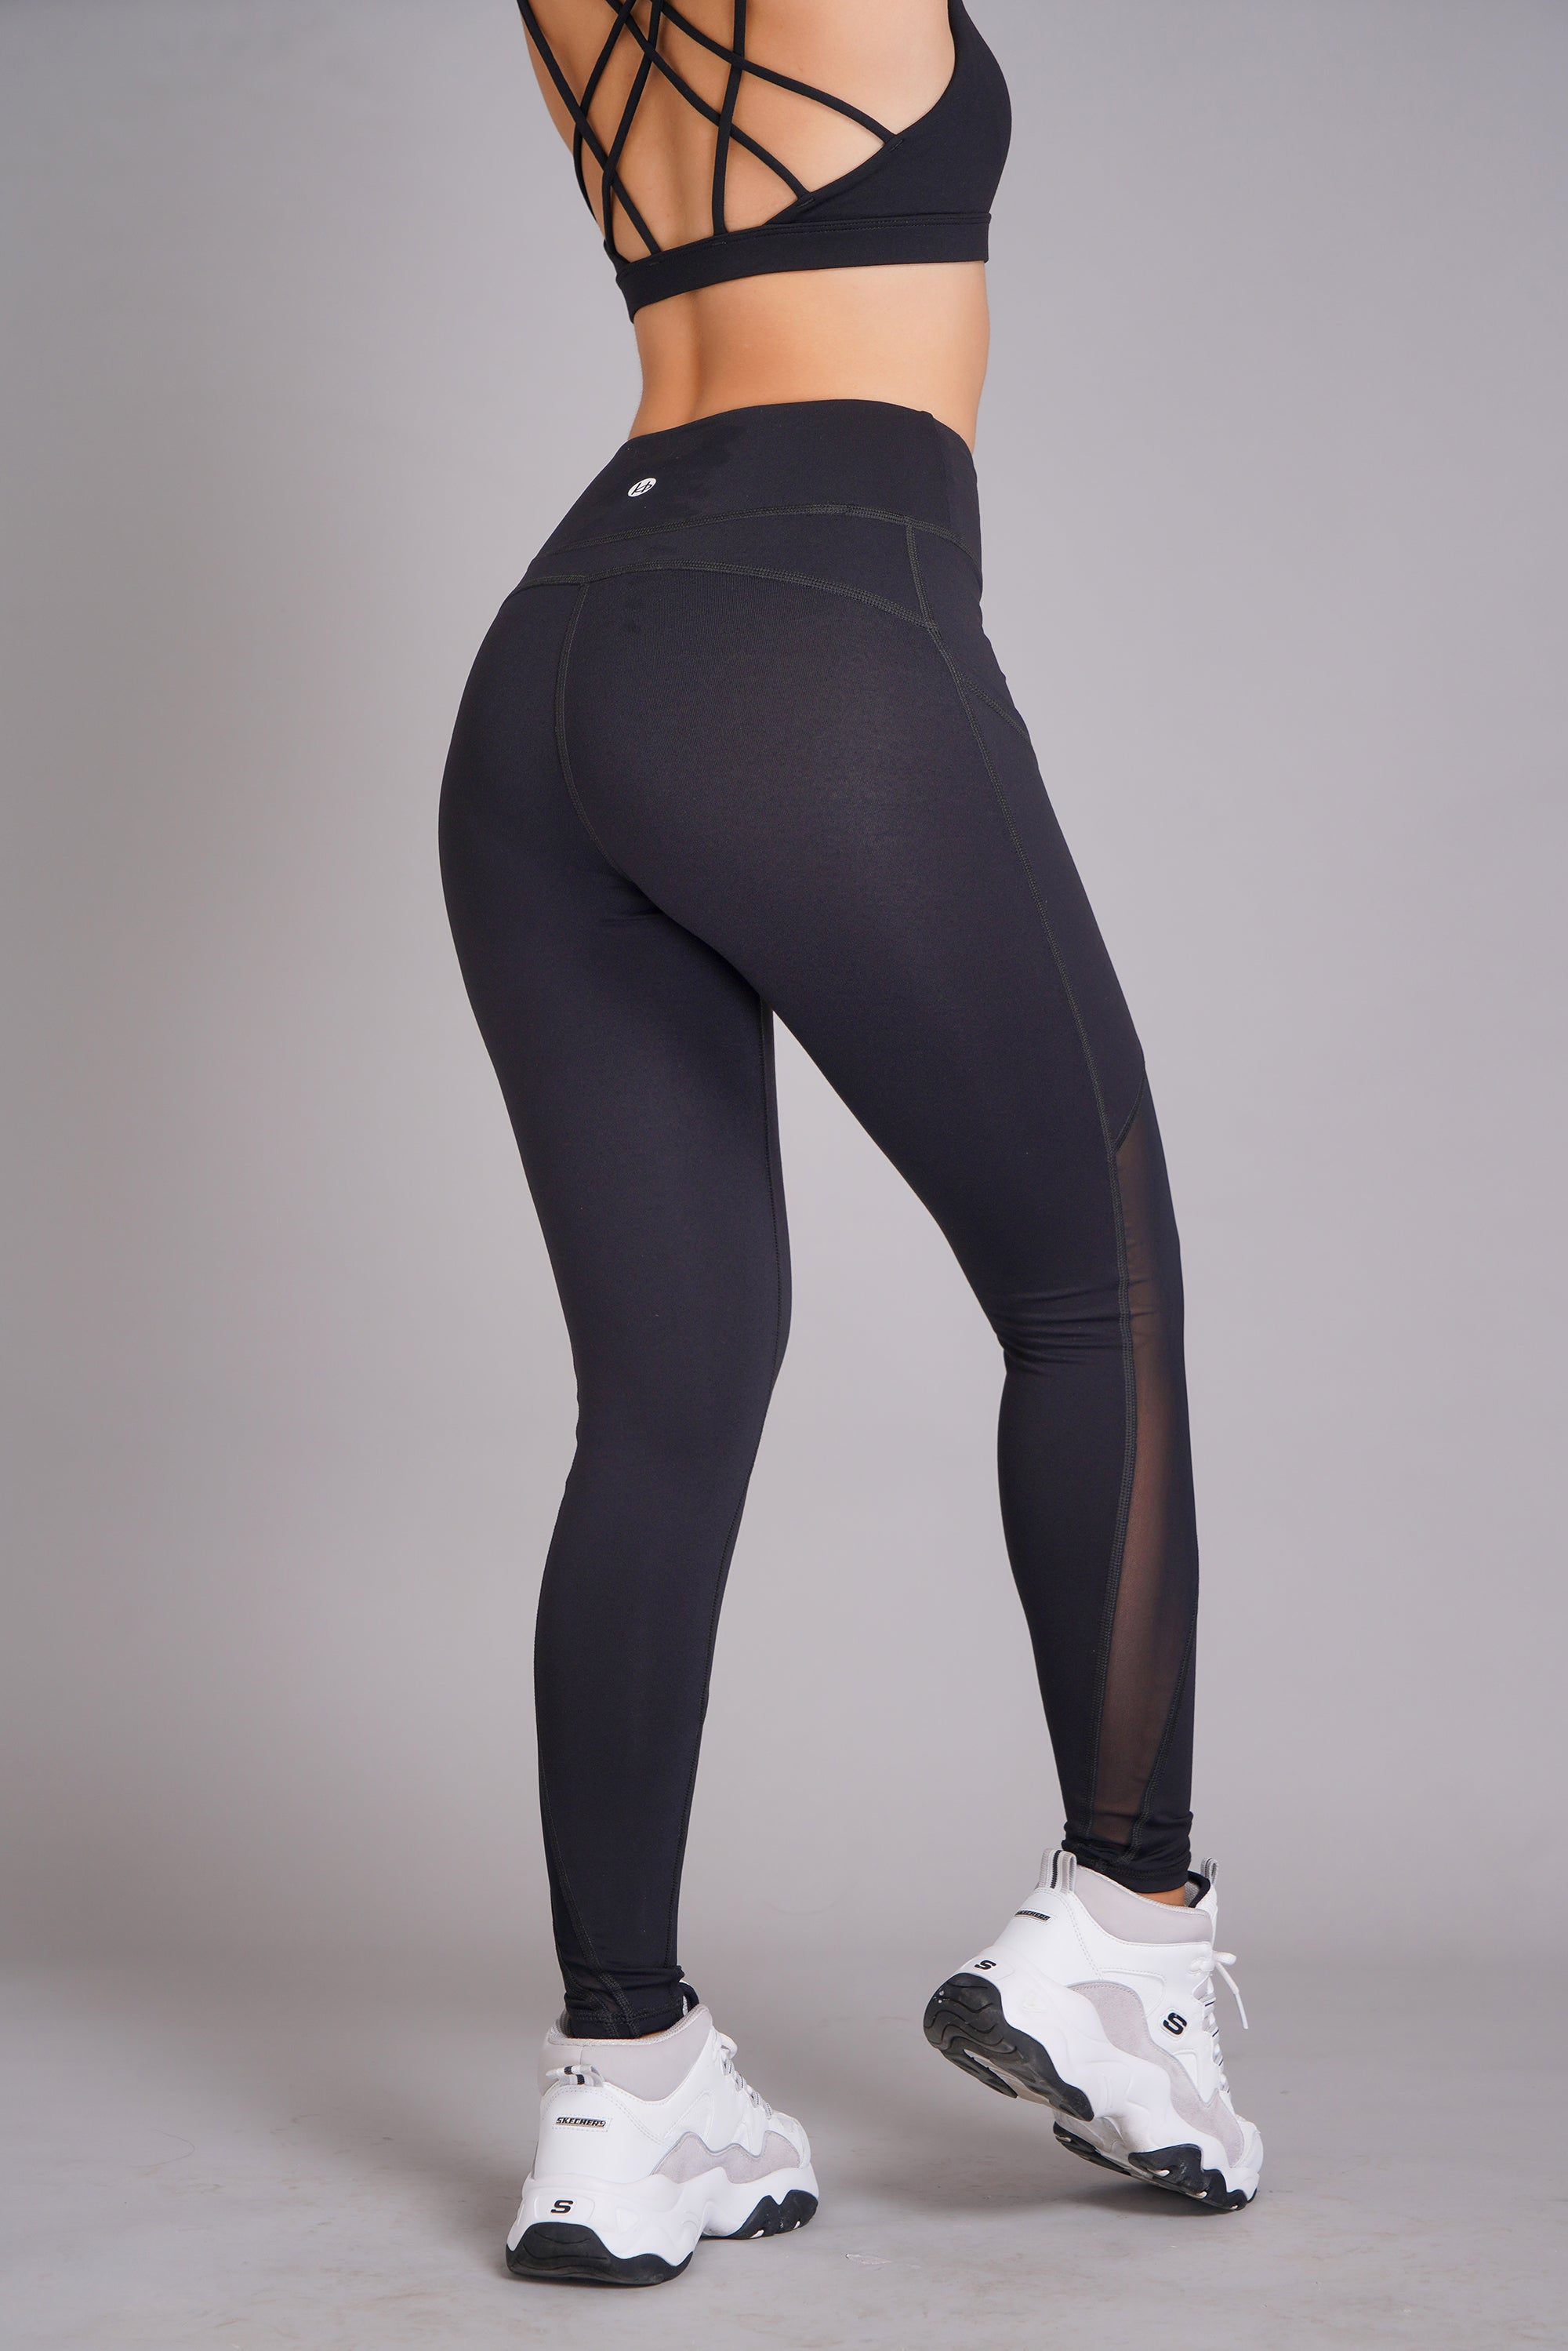 Asana High Waist Side Pockets 7/8 Tight Black